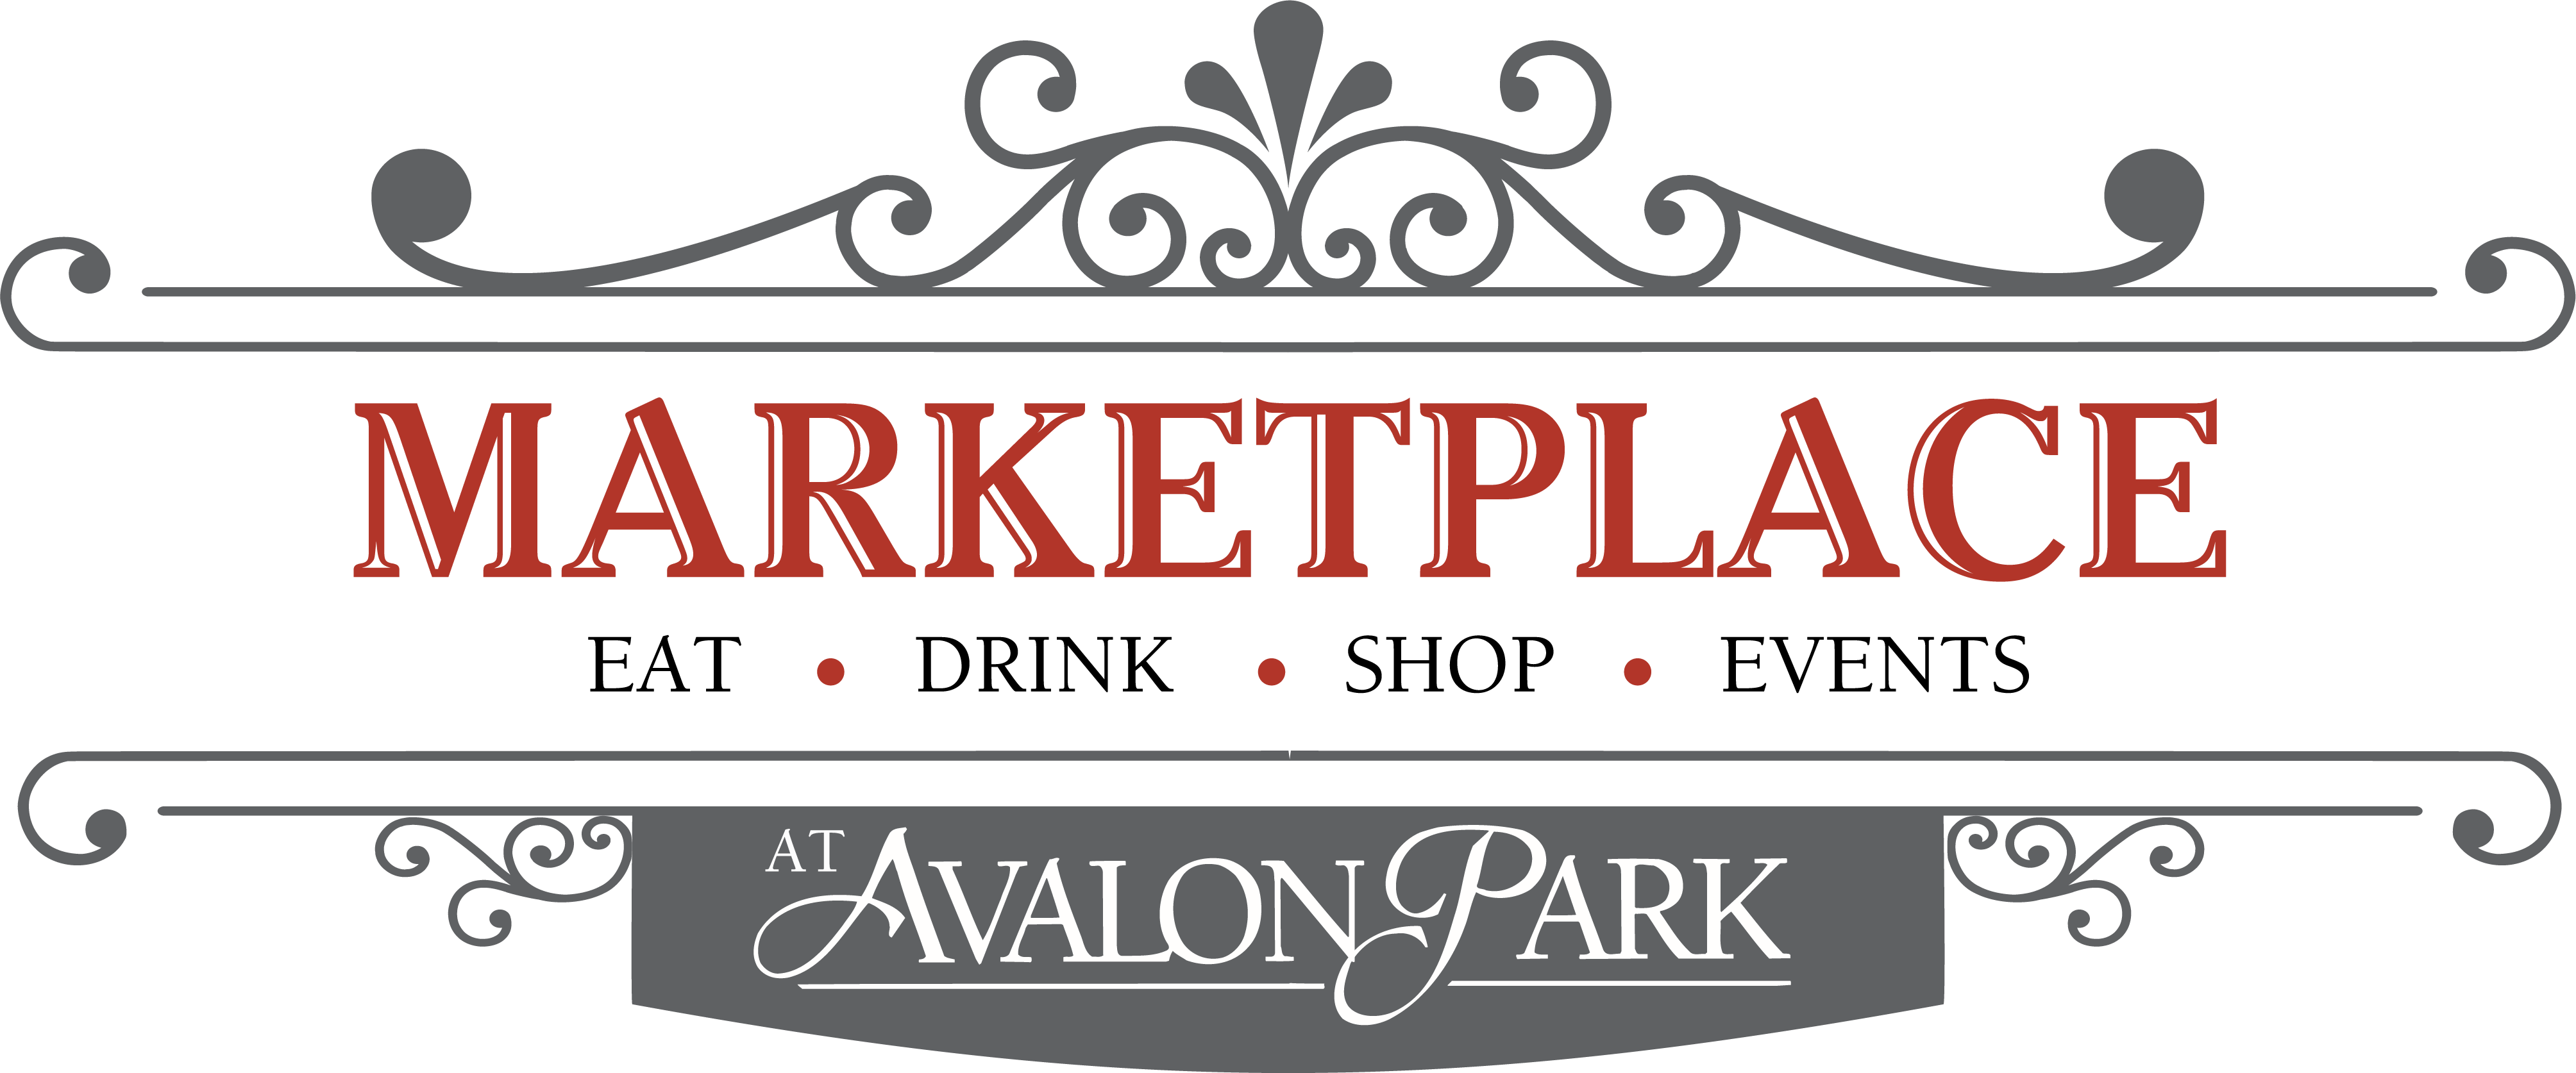 Marketplace at Avalon Park